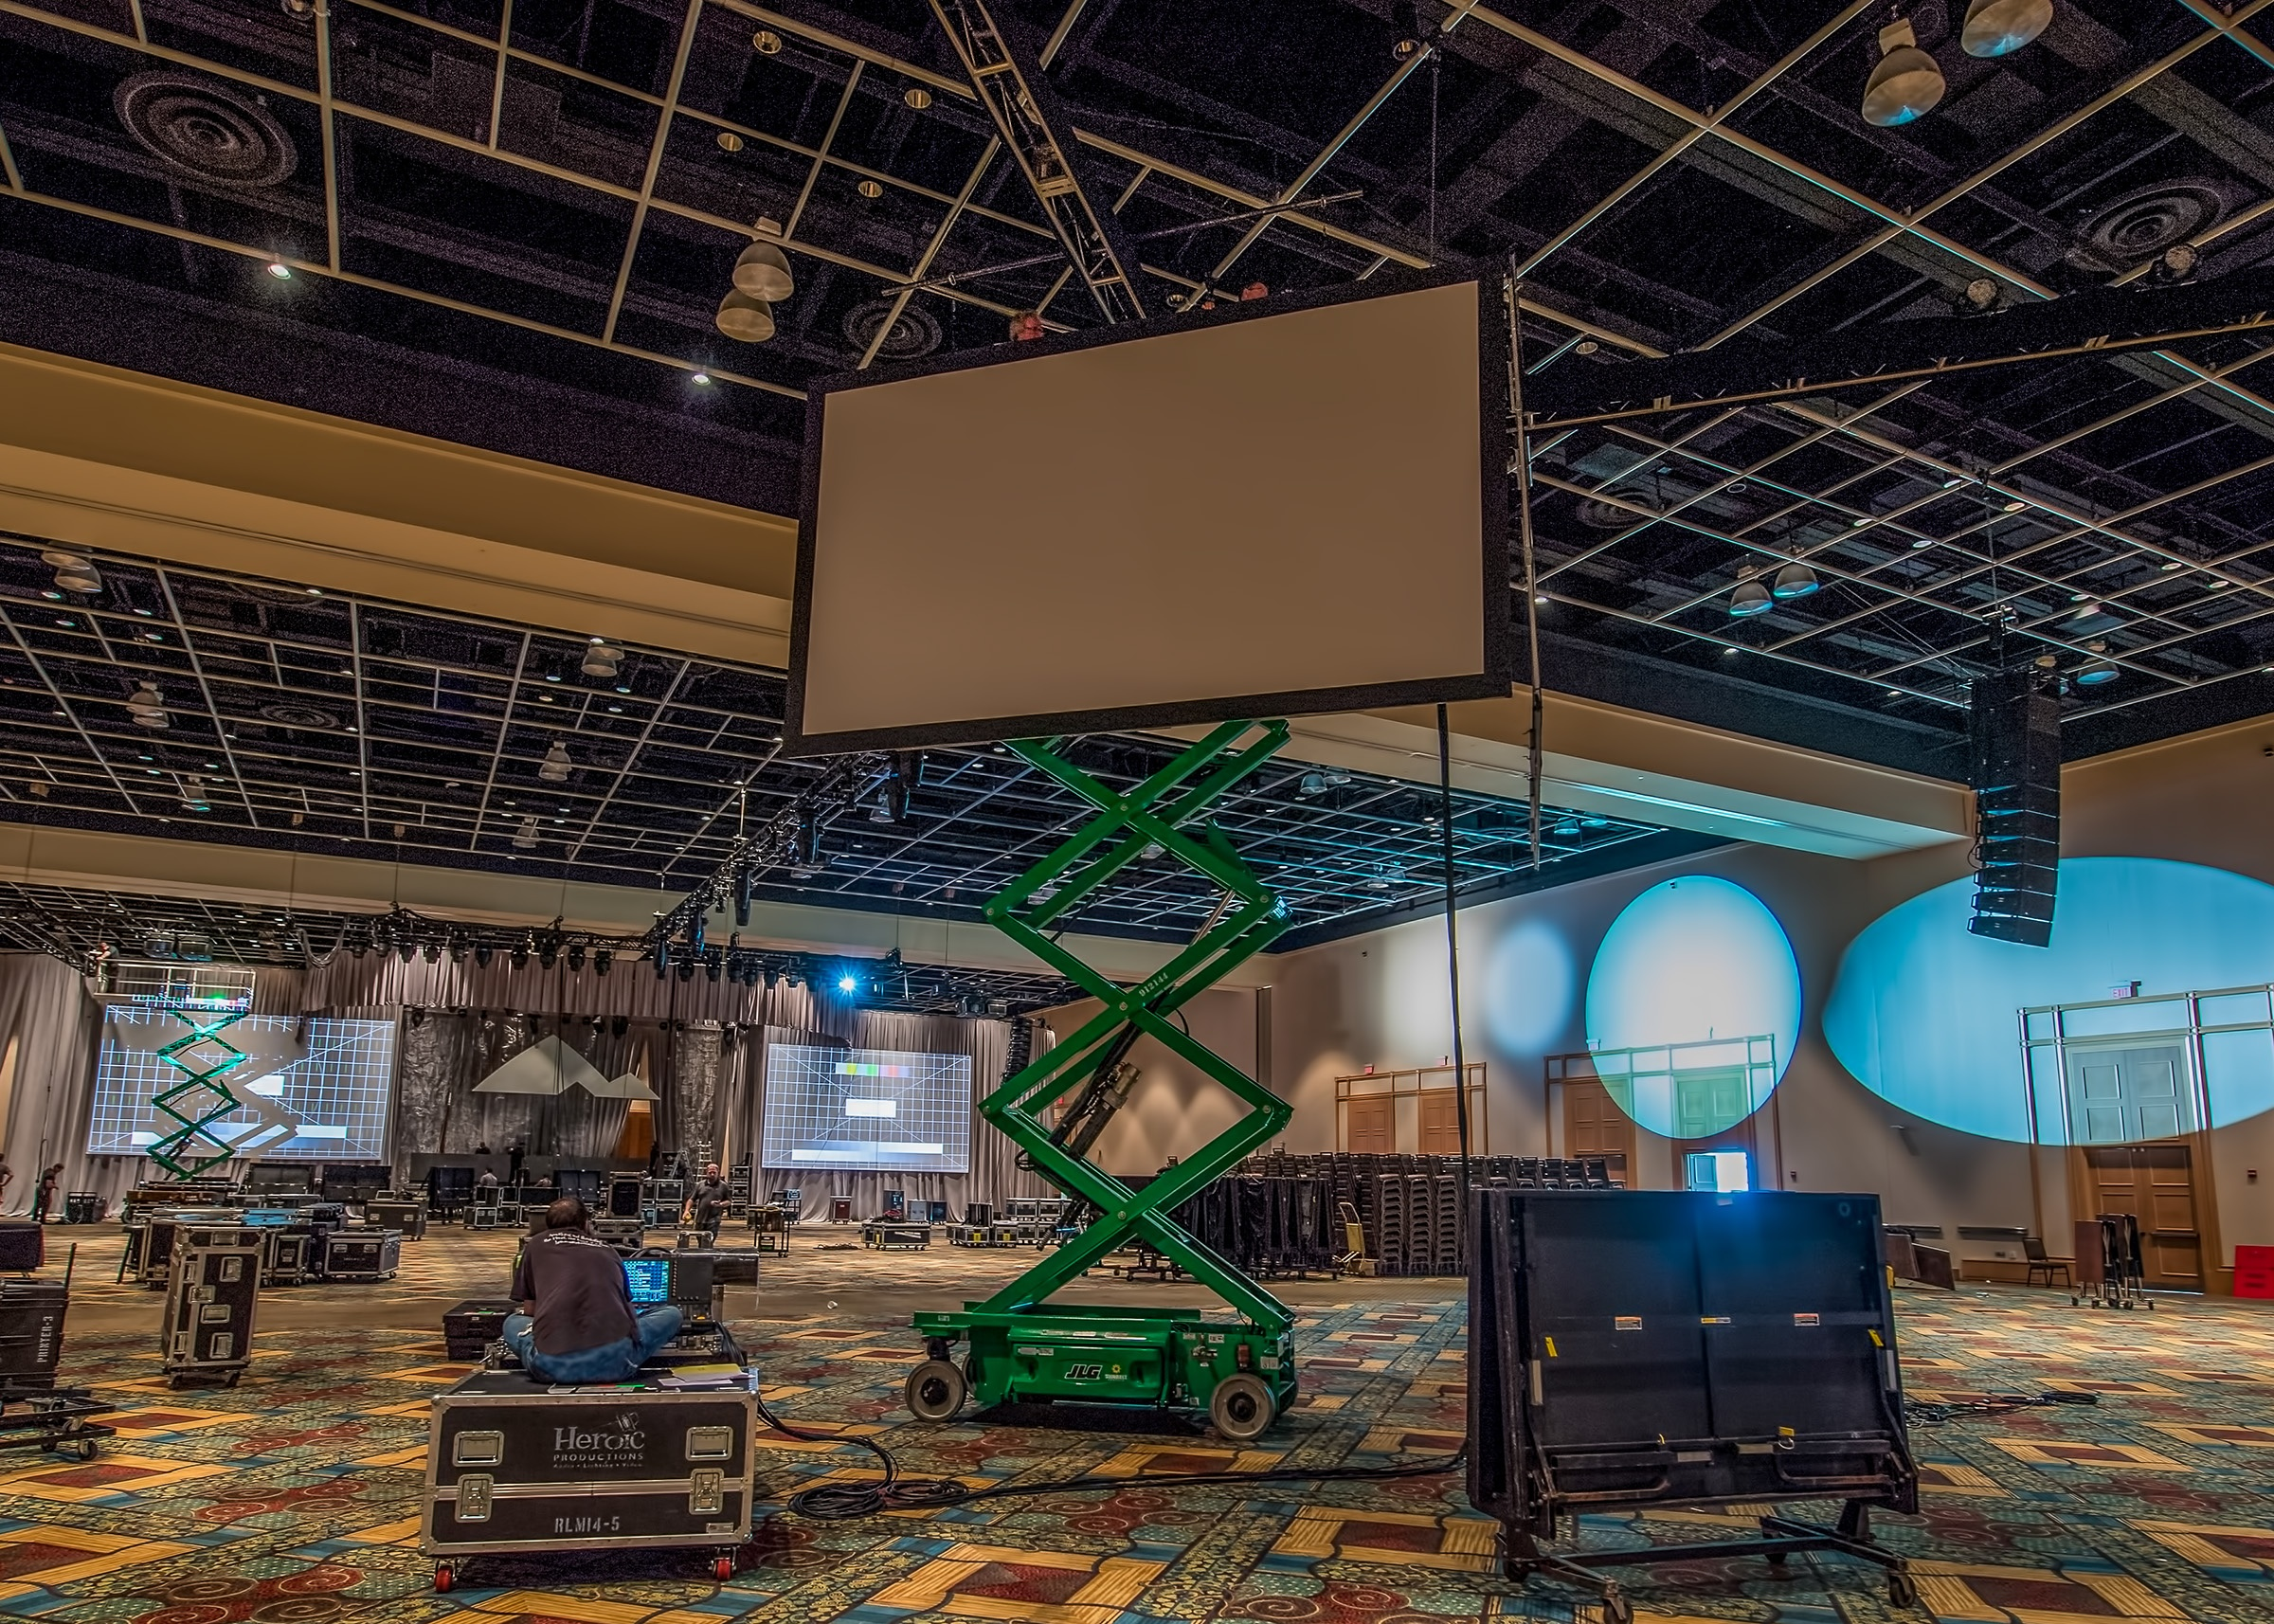 venue ceiling height